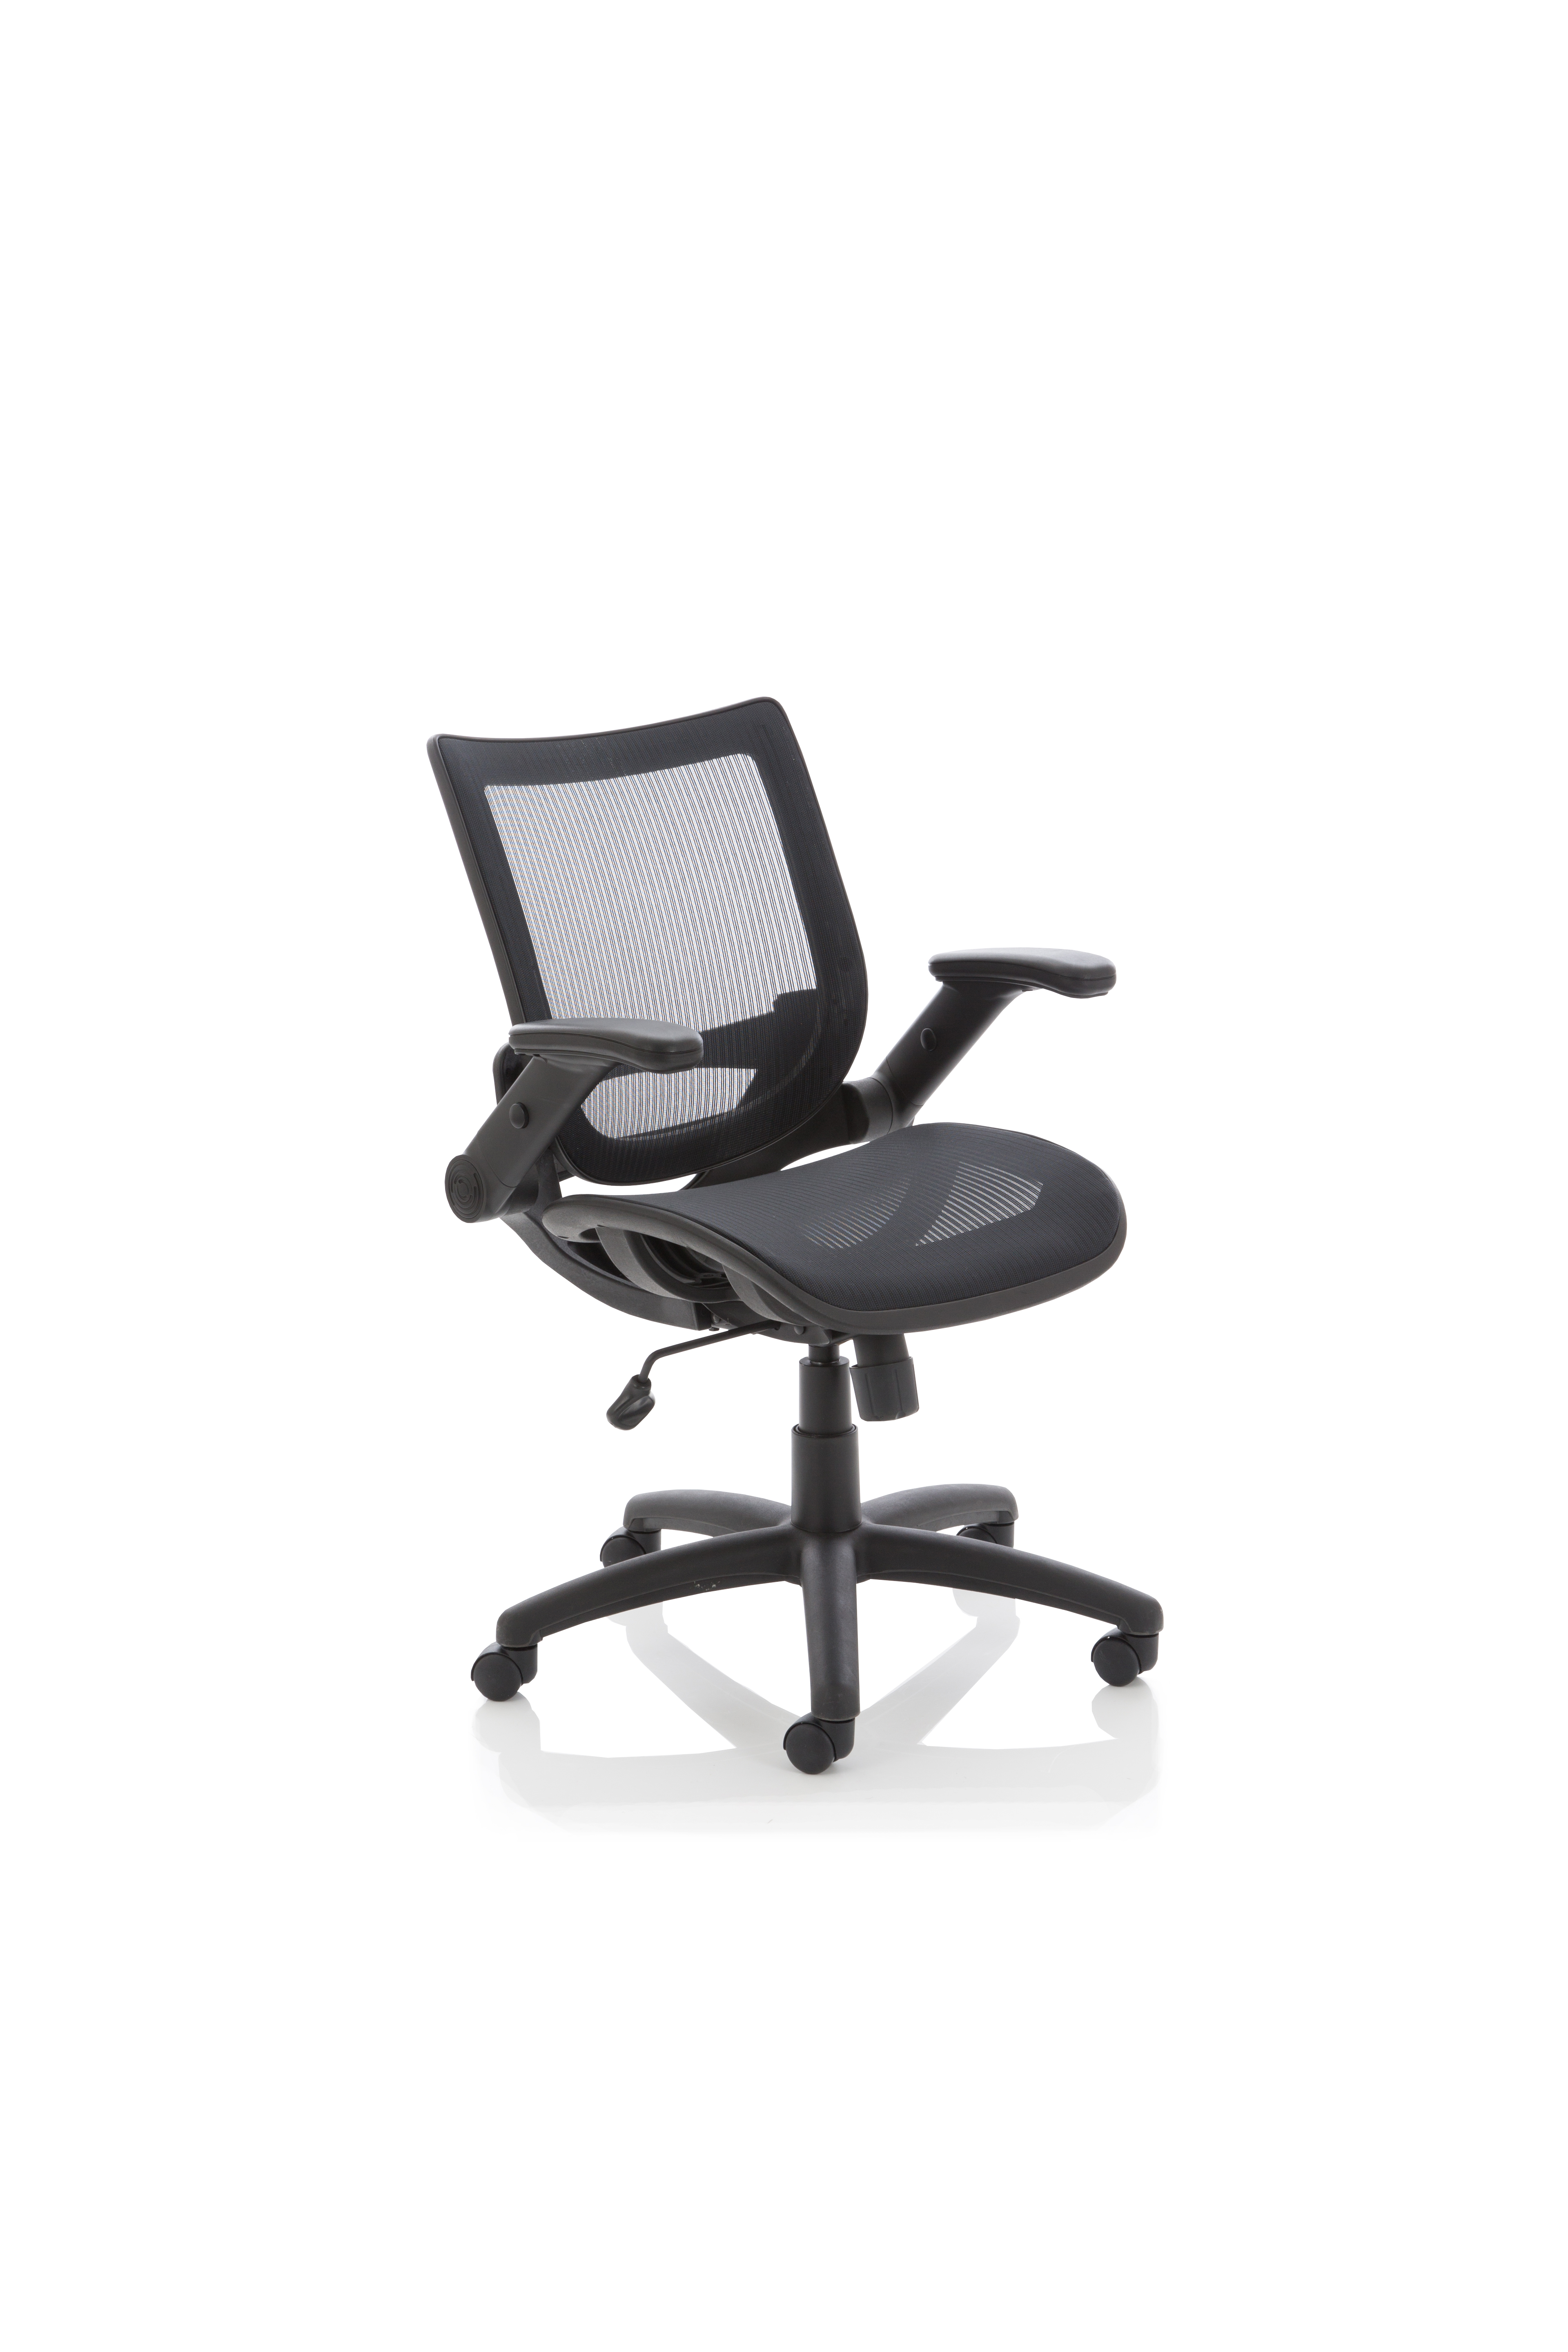 Desk Chairs Fuller Mesh With Folding Arms Task Operator Chair OP000210